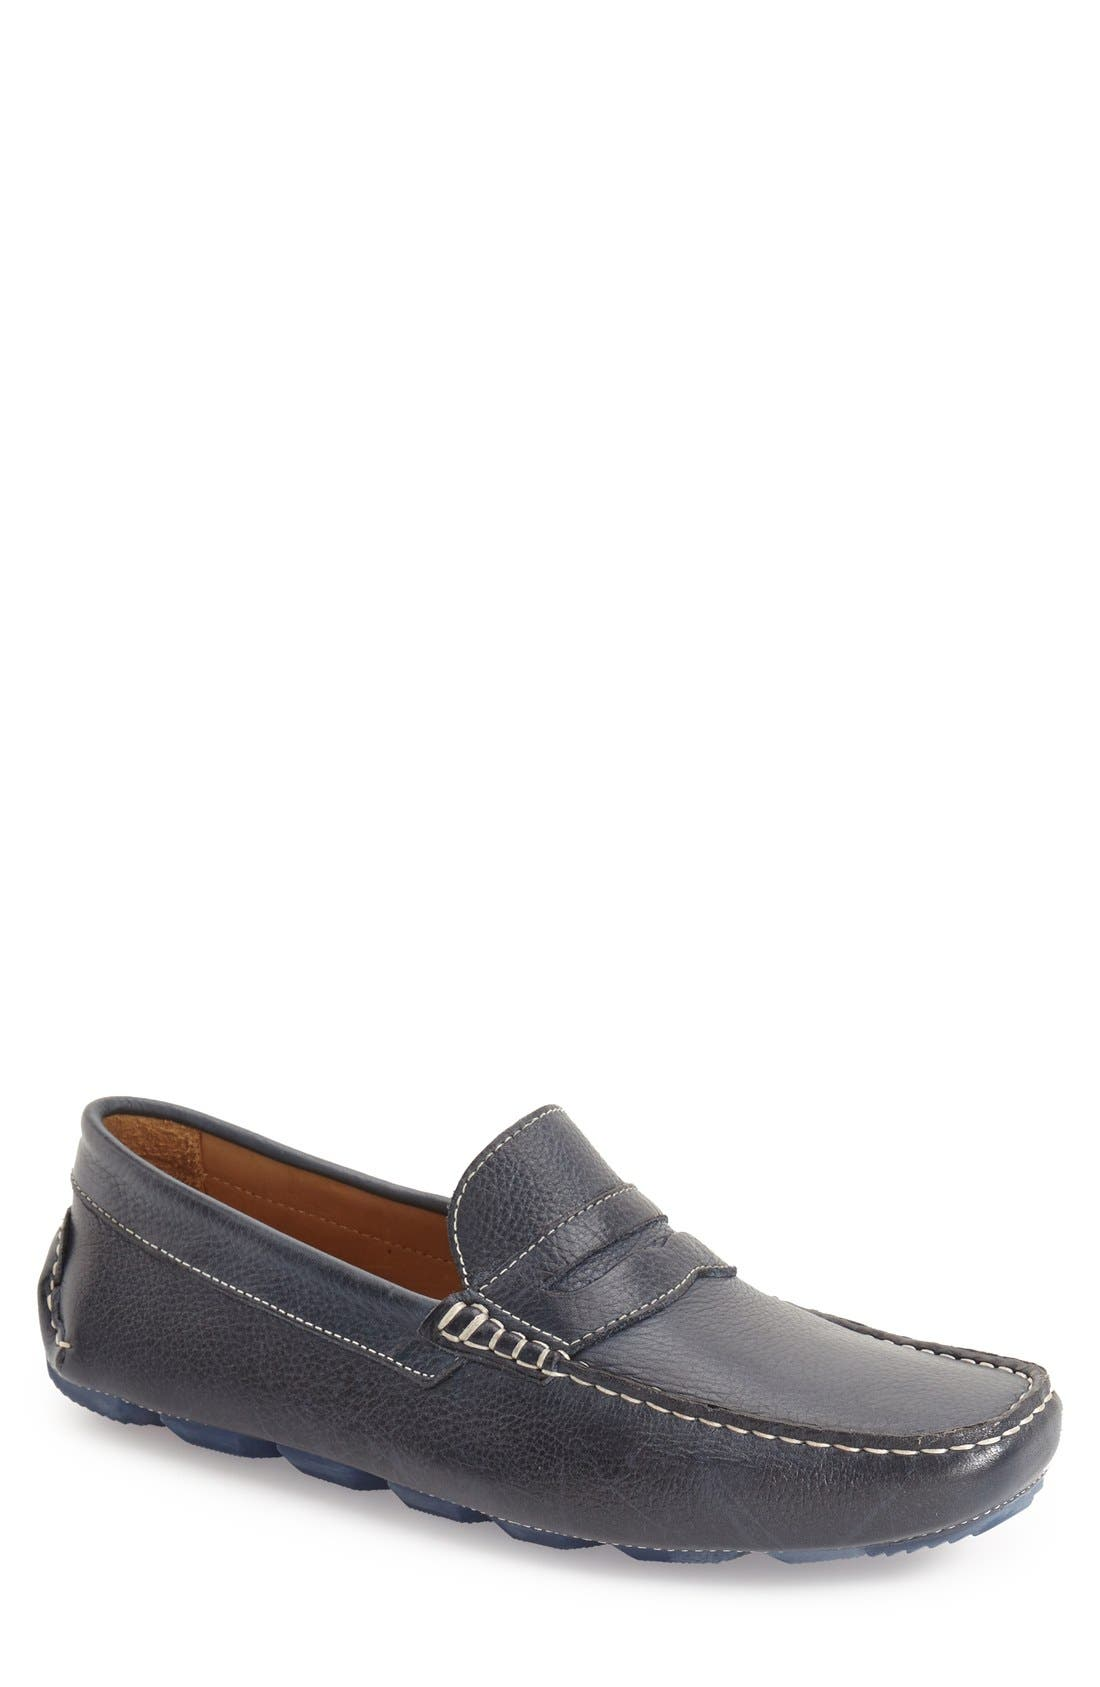 'Bermuda' Penny Loafer,                             Main thumbnail 1, color,                             MARINE LEATHER